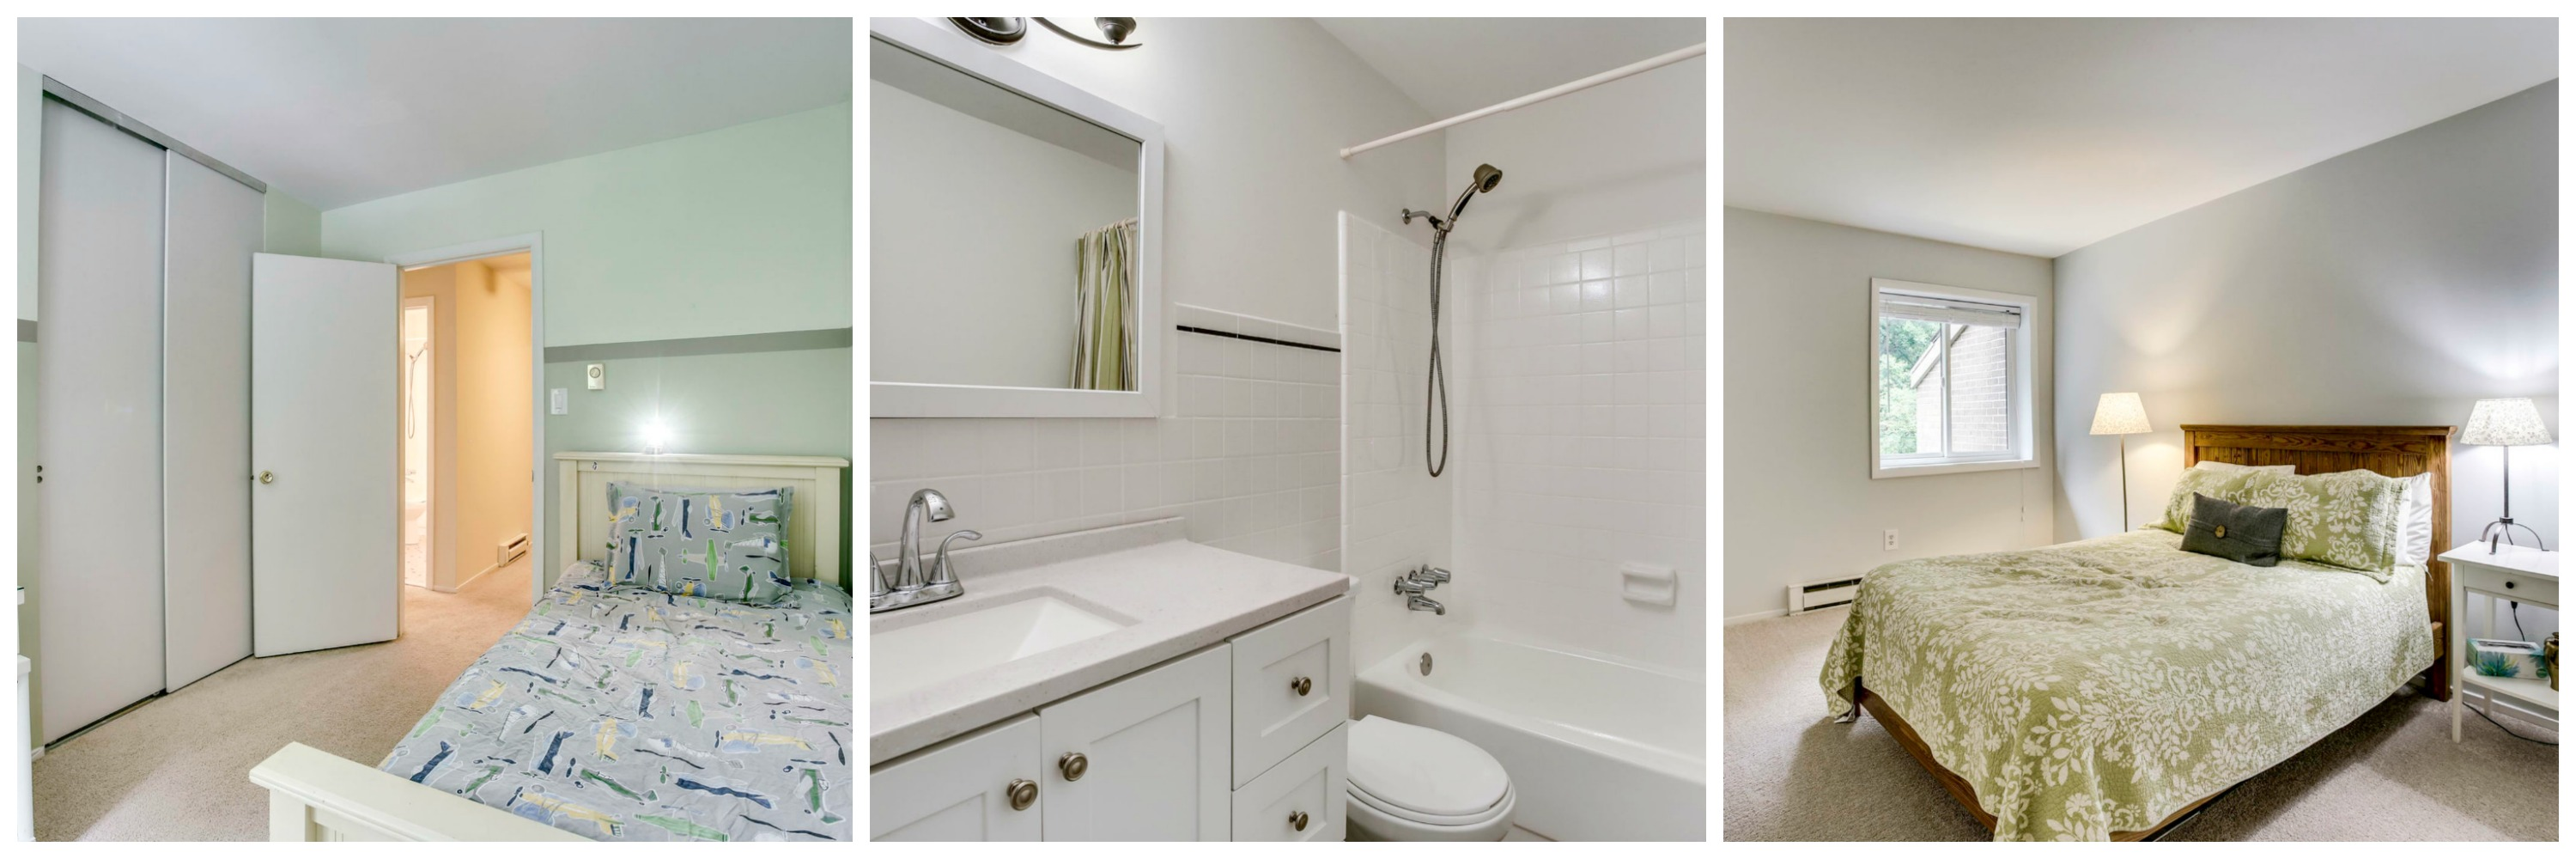 2160 Glencourse Ln, Reston - Additional Bedrooms and Bathroom